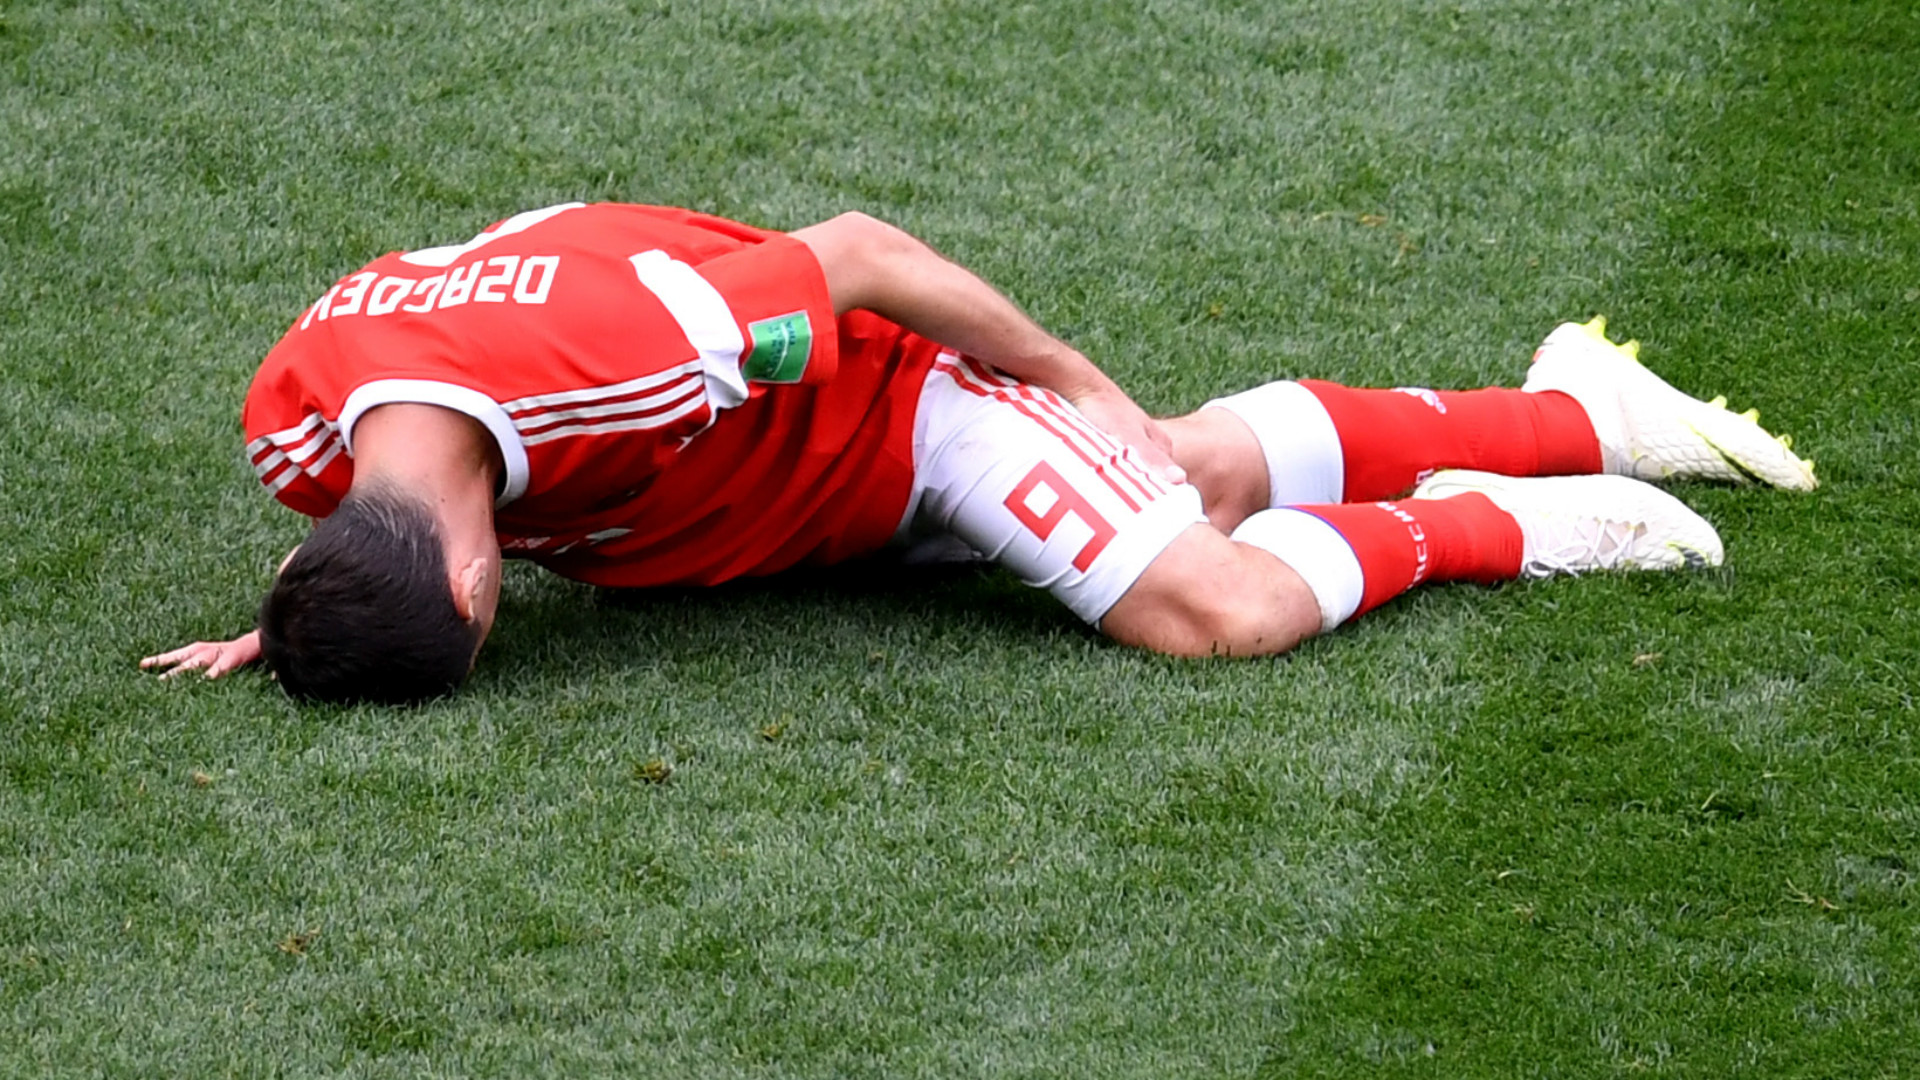 Saudi Arabia players face 'penalty' after disastrous World Cup defeat